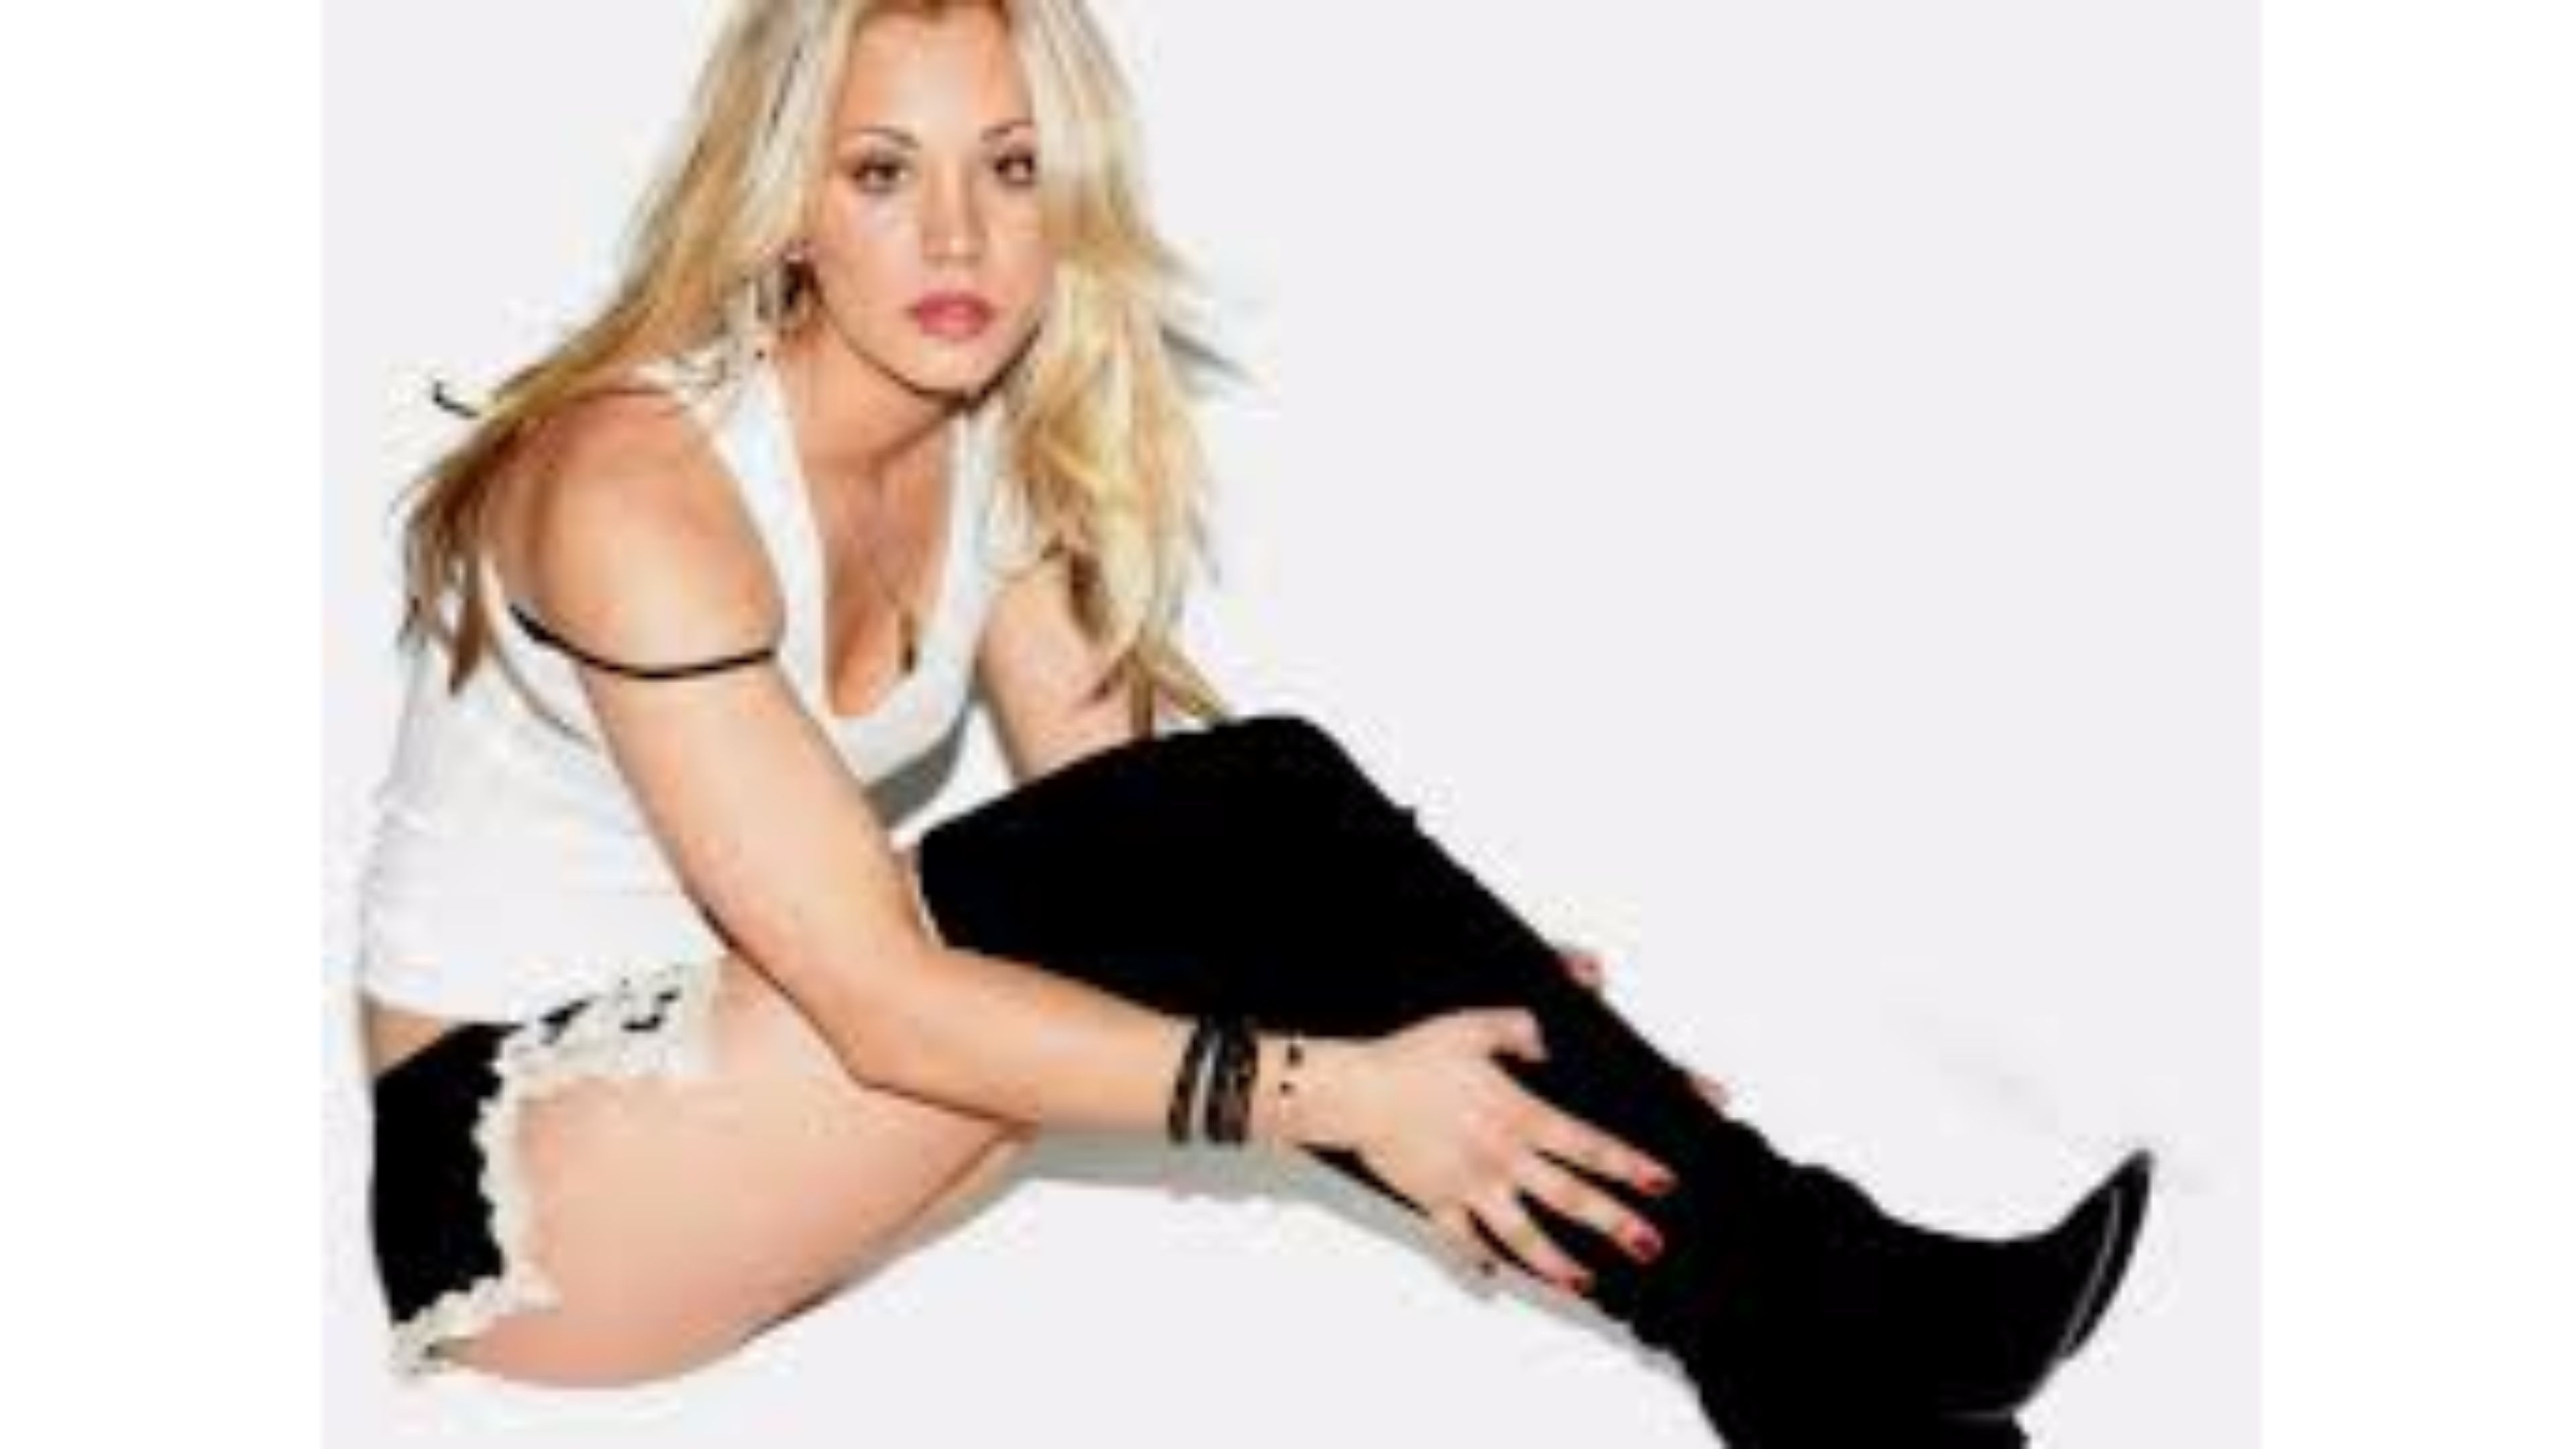 Kaley Cuoco Wallpaper Widescreen Top 43 Quality Cool 3840x2160